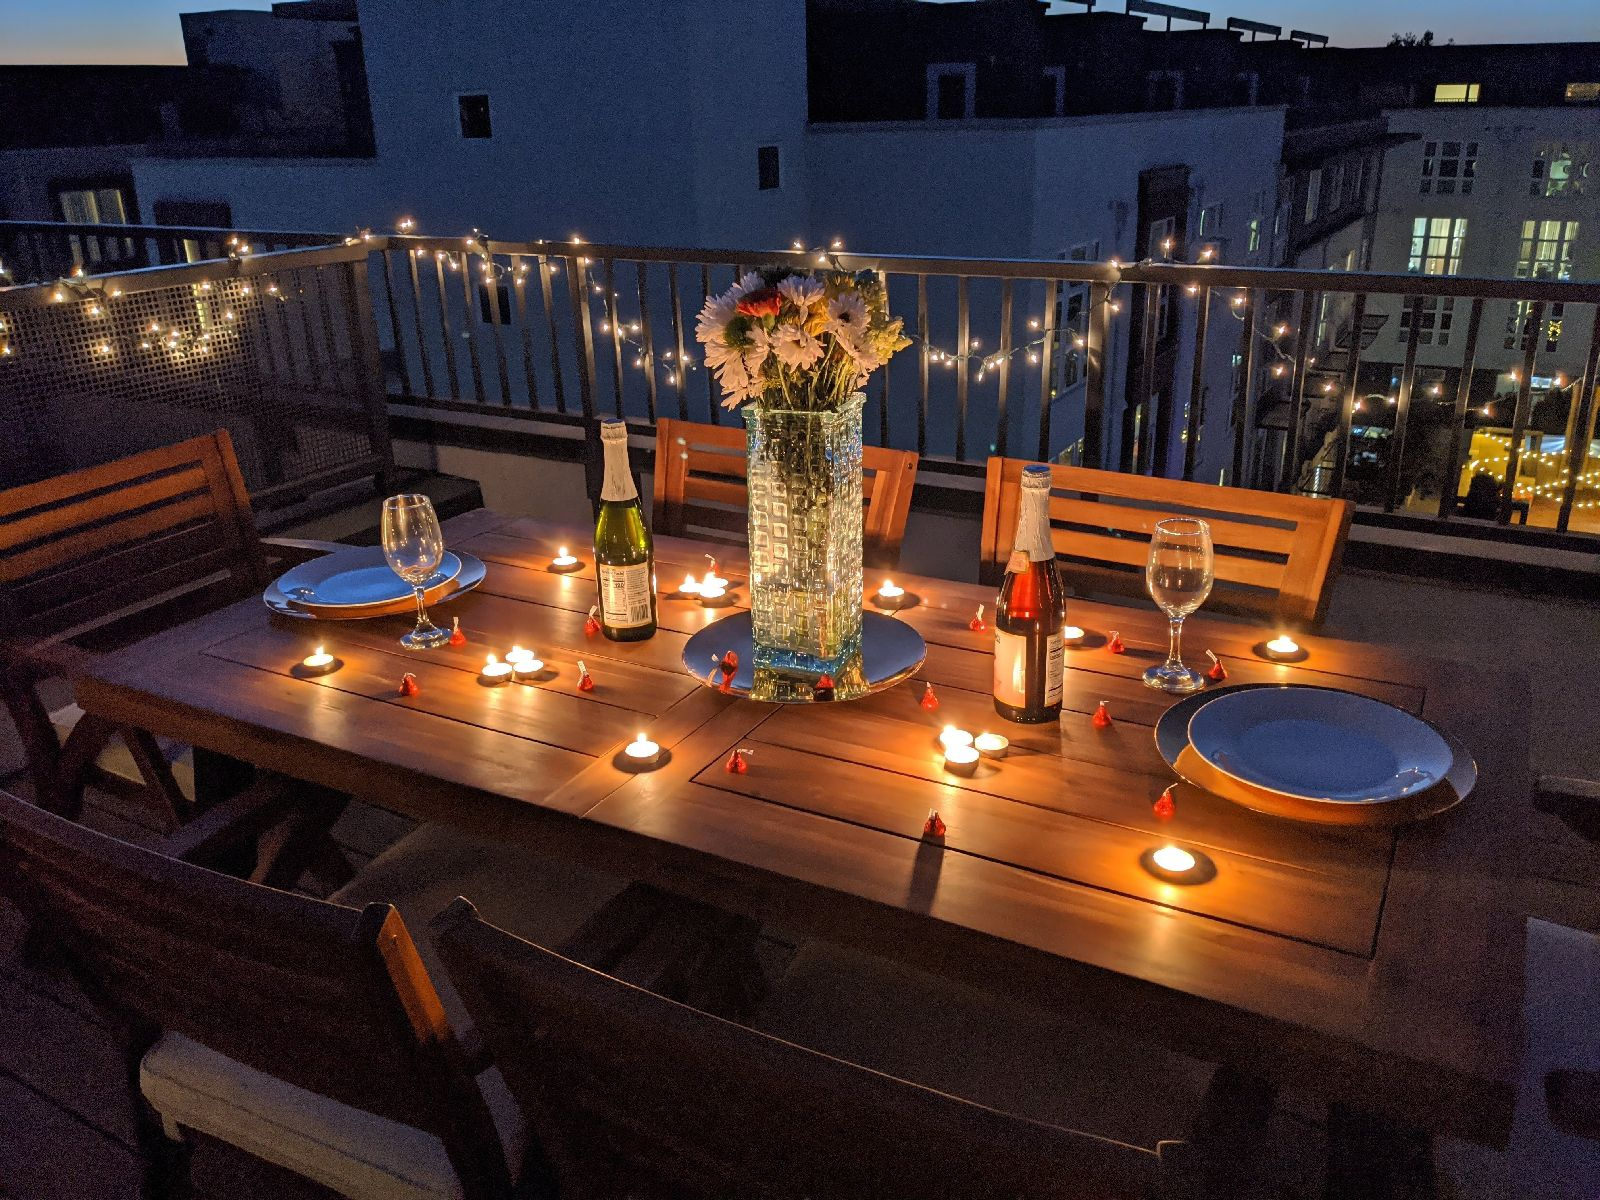 Staging The Perfect Romantic Dinner In 2020 Romantic Dinner Decoration Romantic Candle Light Dinner Romantic Dinner Setting